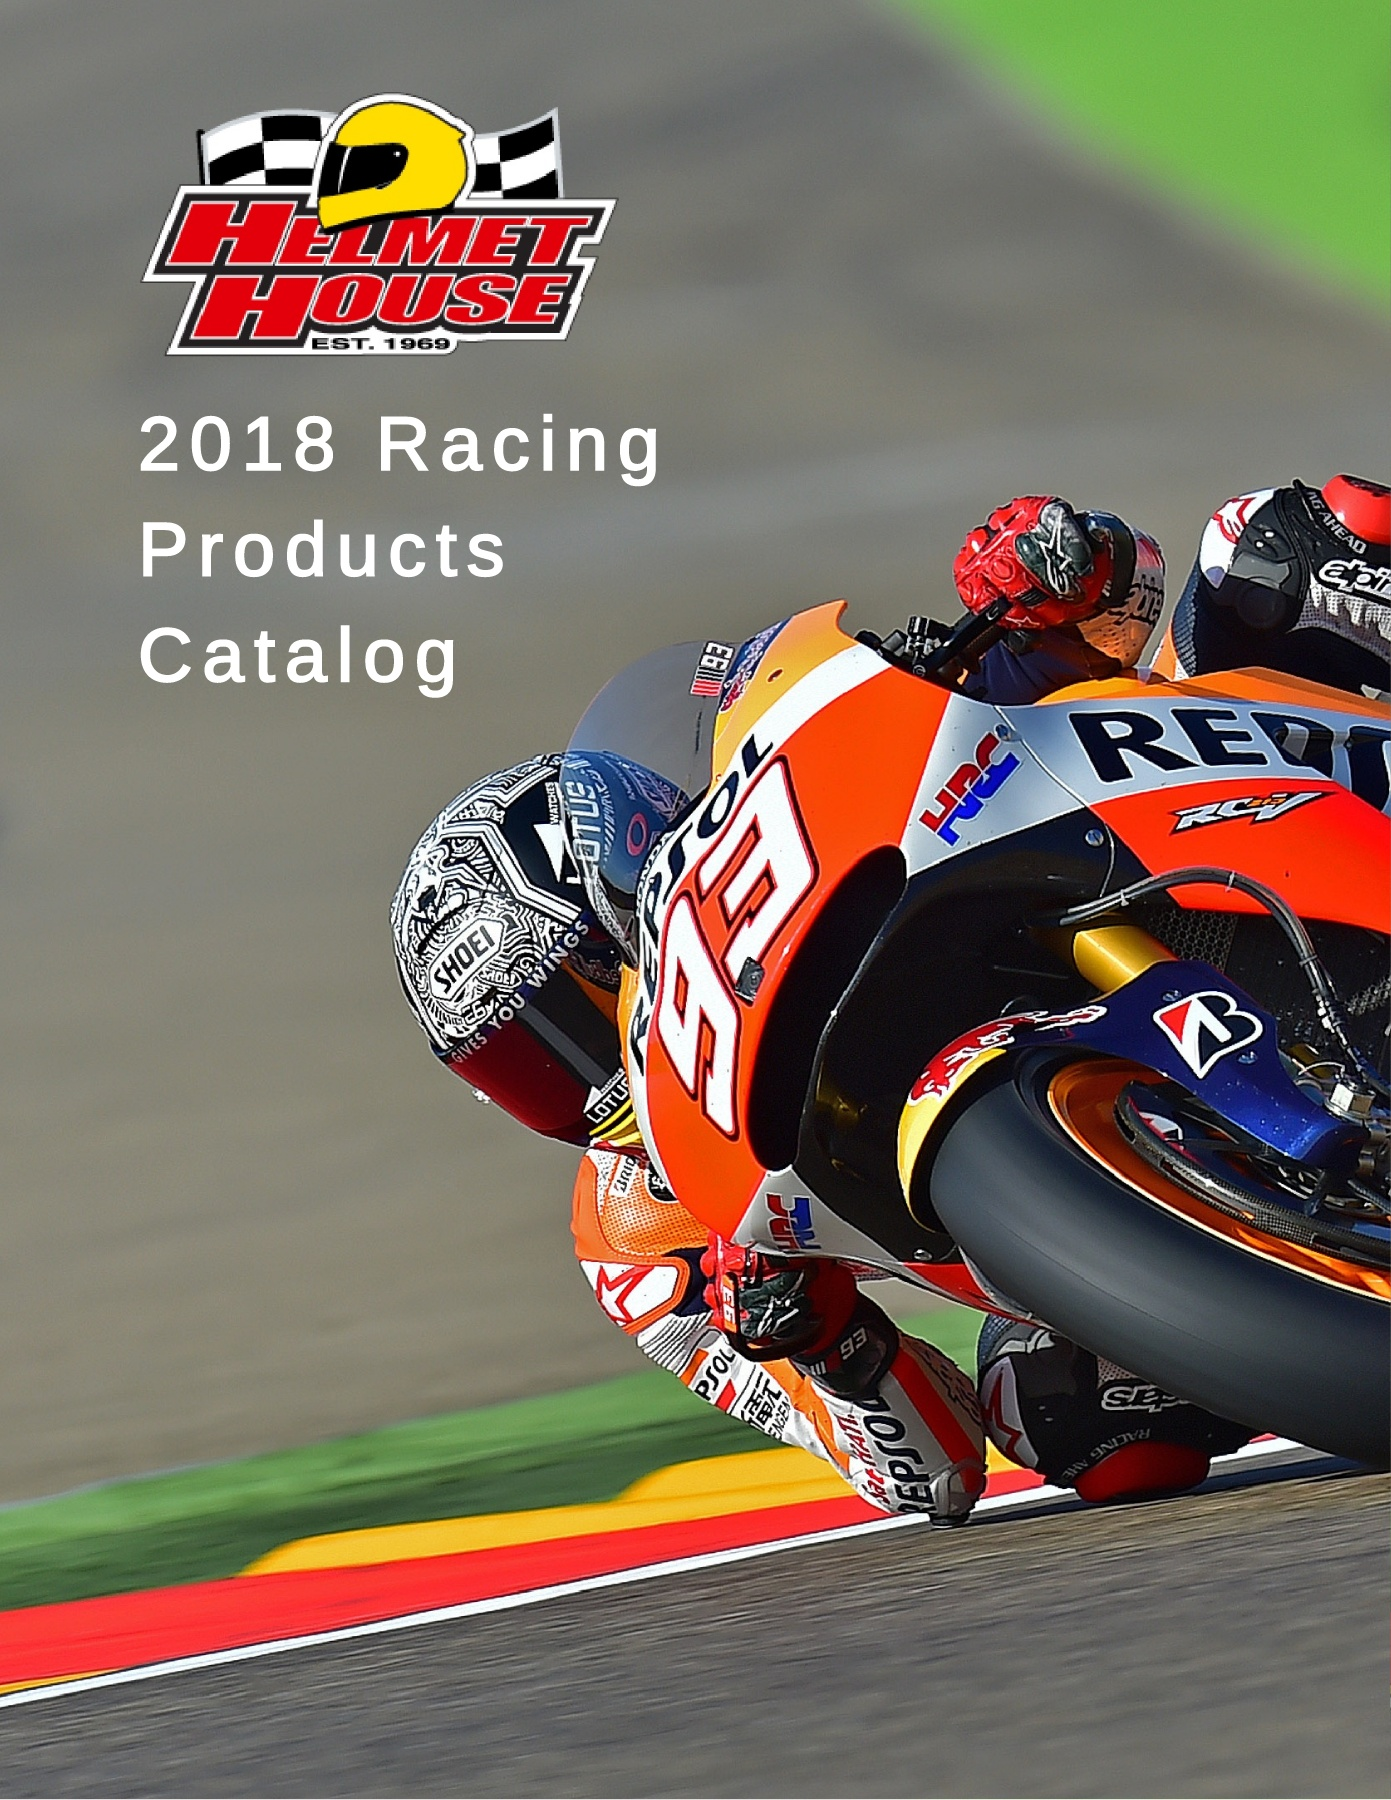 4b82c9a9 2018 Helmet House Racing Products Pages 1 - 50 - Text Version | AnyFlip